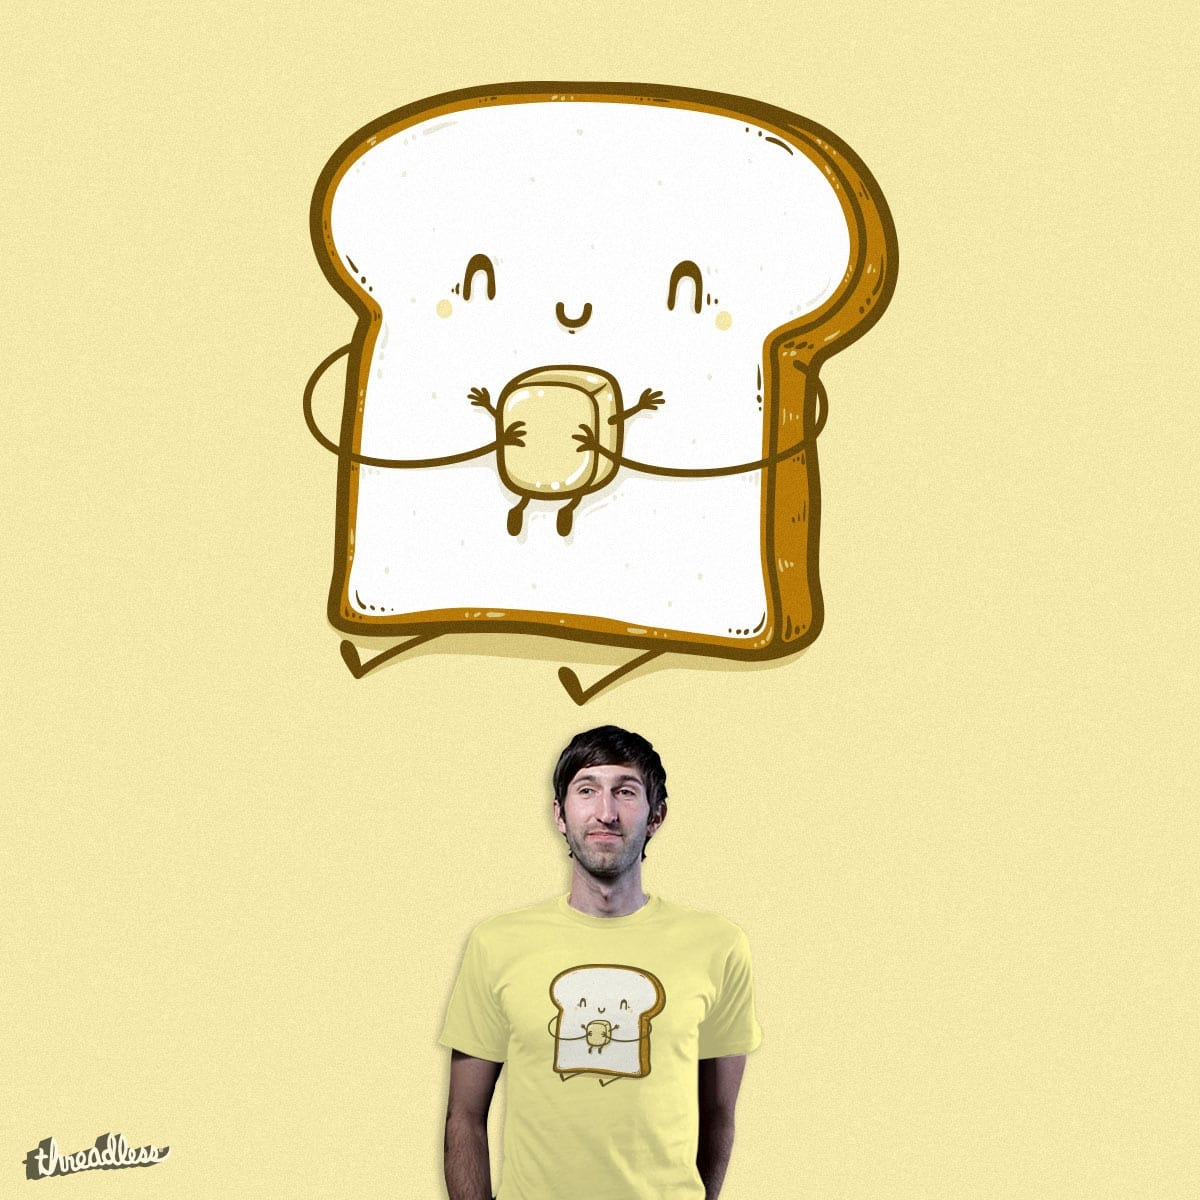 Bread and butter by Robo Rat on Threadless